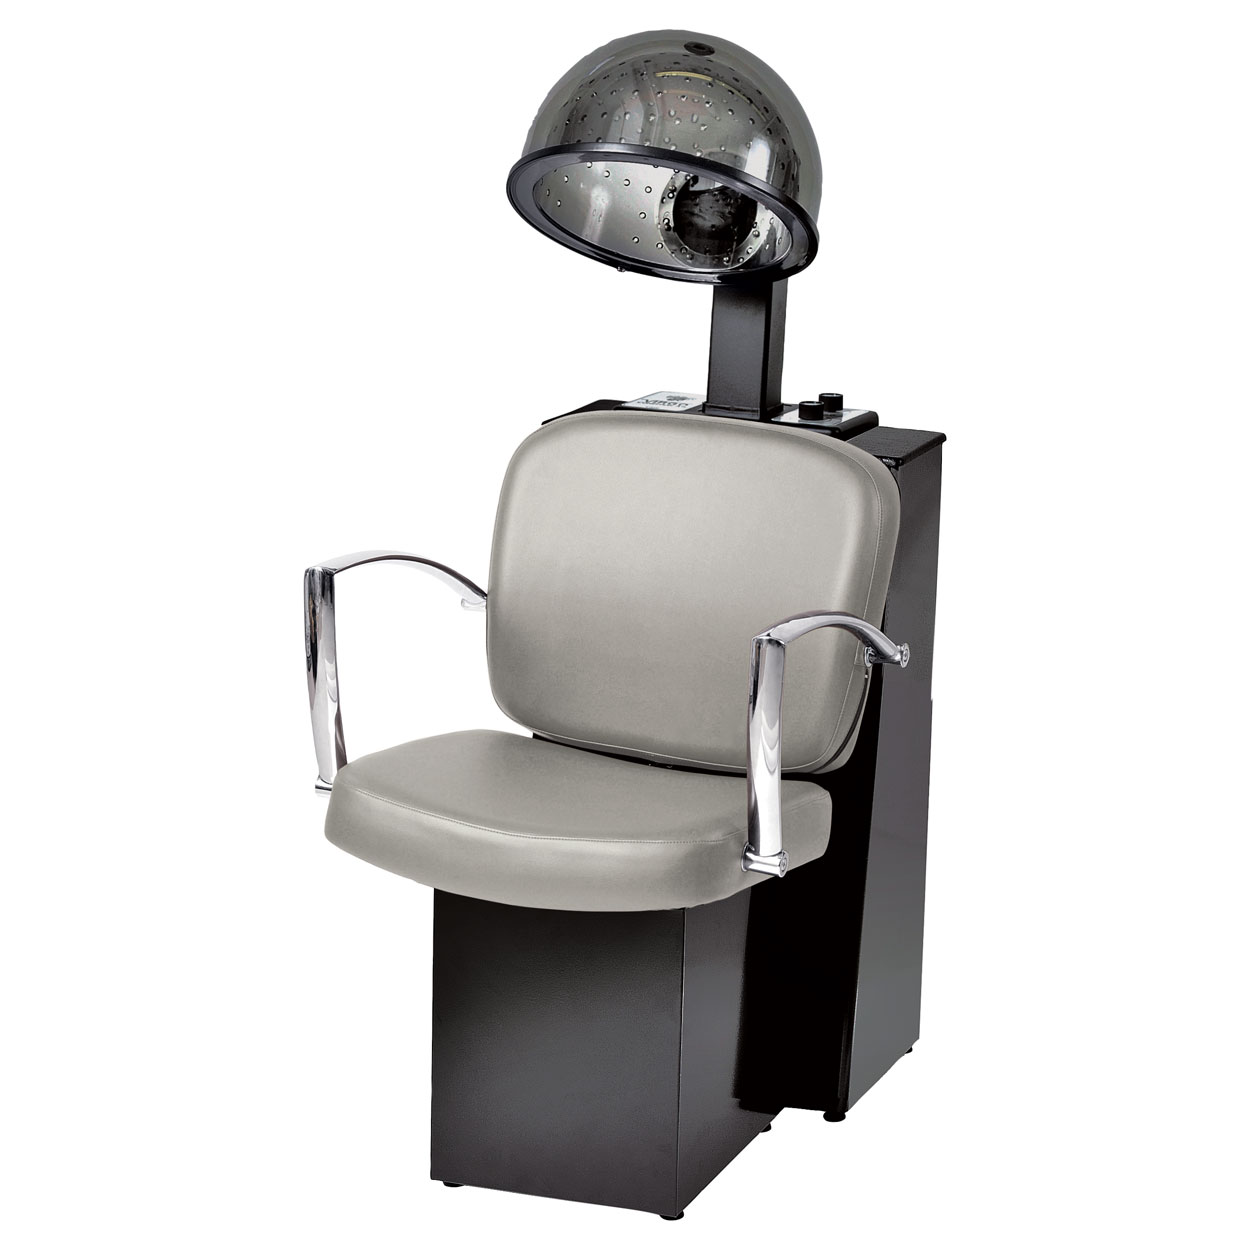 Miraculous Pibbs 3769 Pisa Salon Hair Dryer Chair Combo With Dryer Caraccident5 Cool Chair Designs And Ideas Caraccident5Info